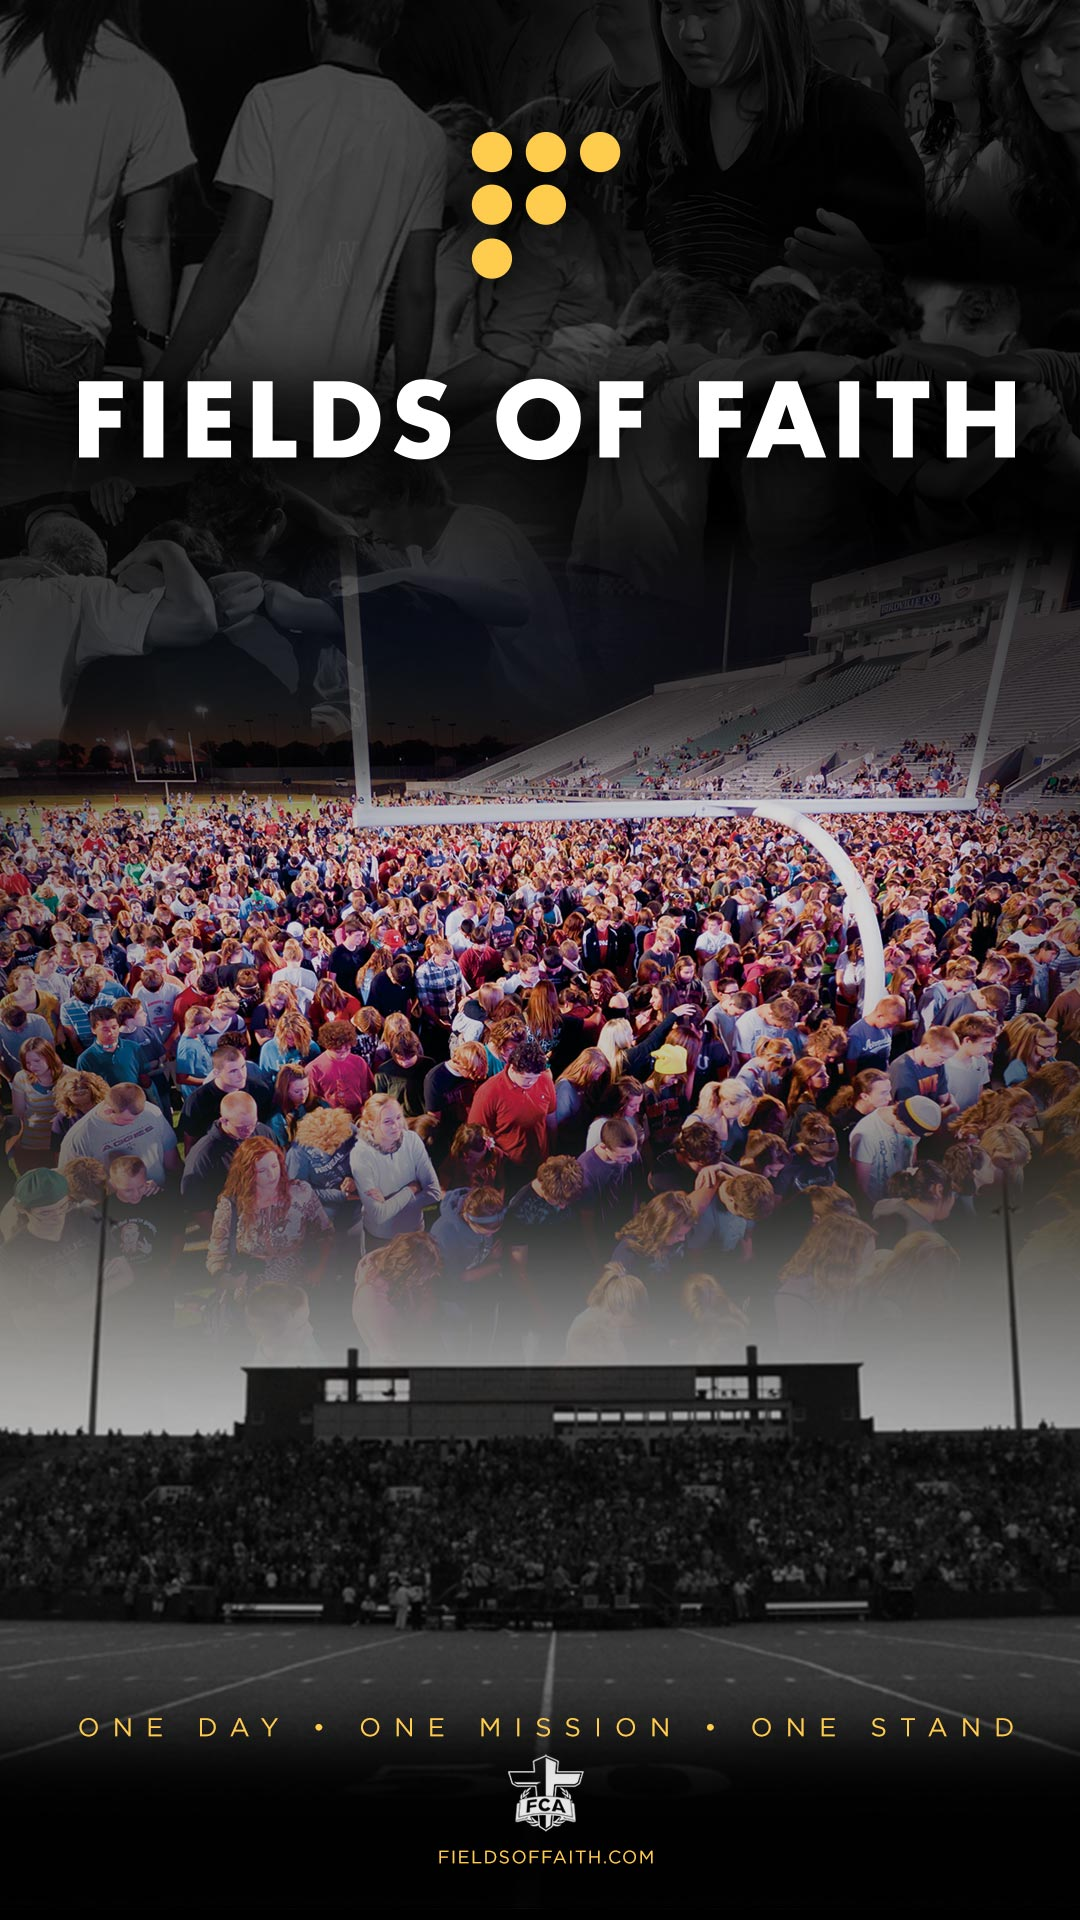 Iphone Default Wallpaper Fields Of Faith 2016 Fca Resources